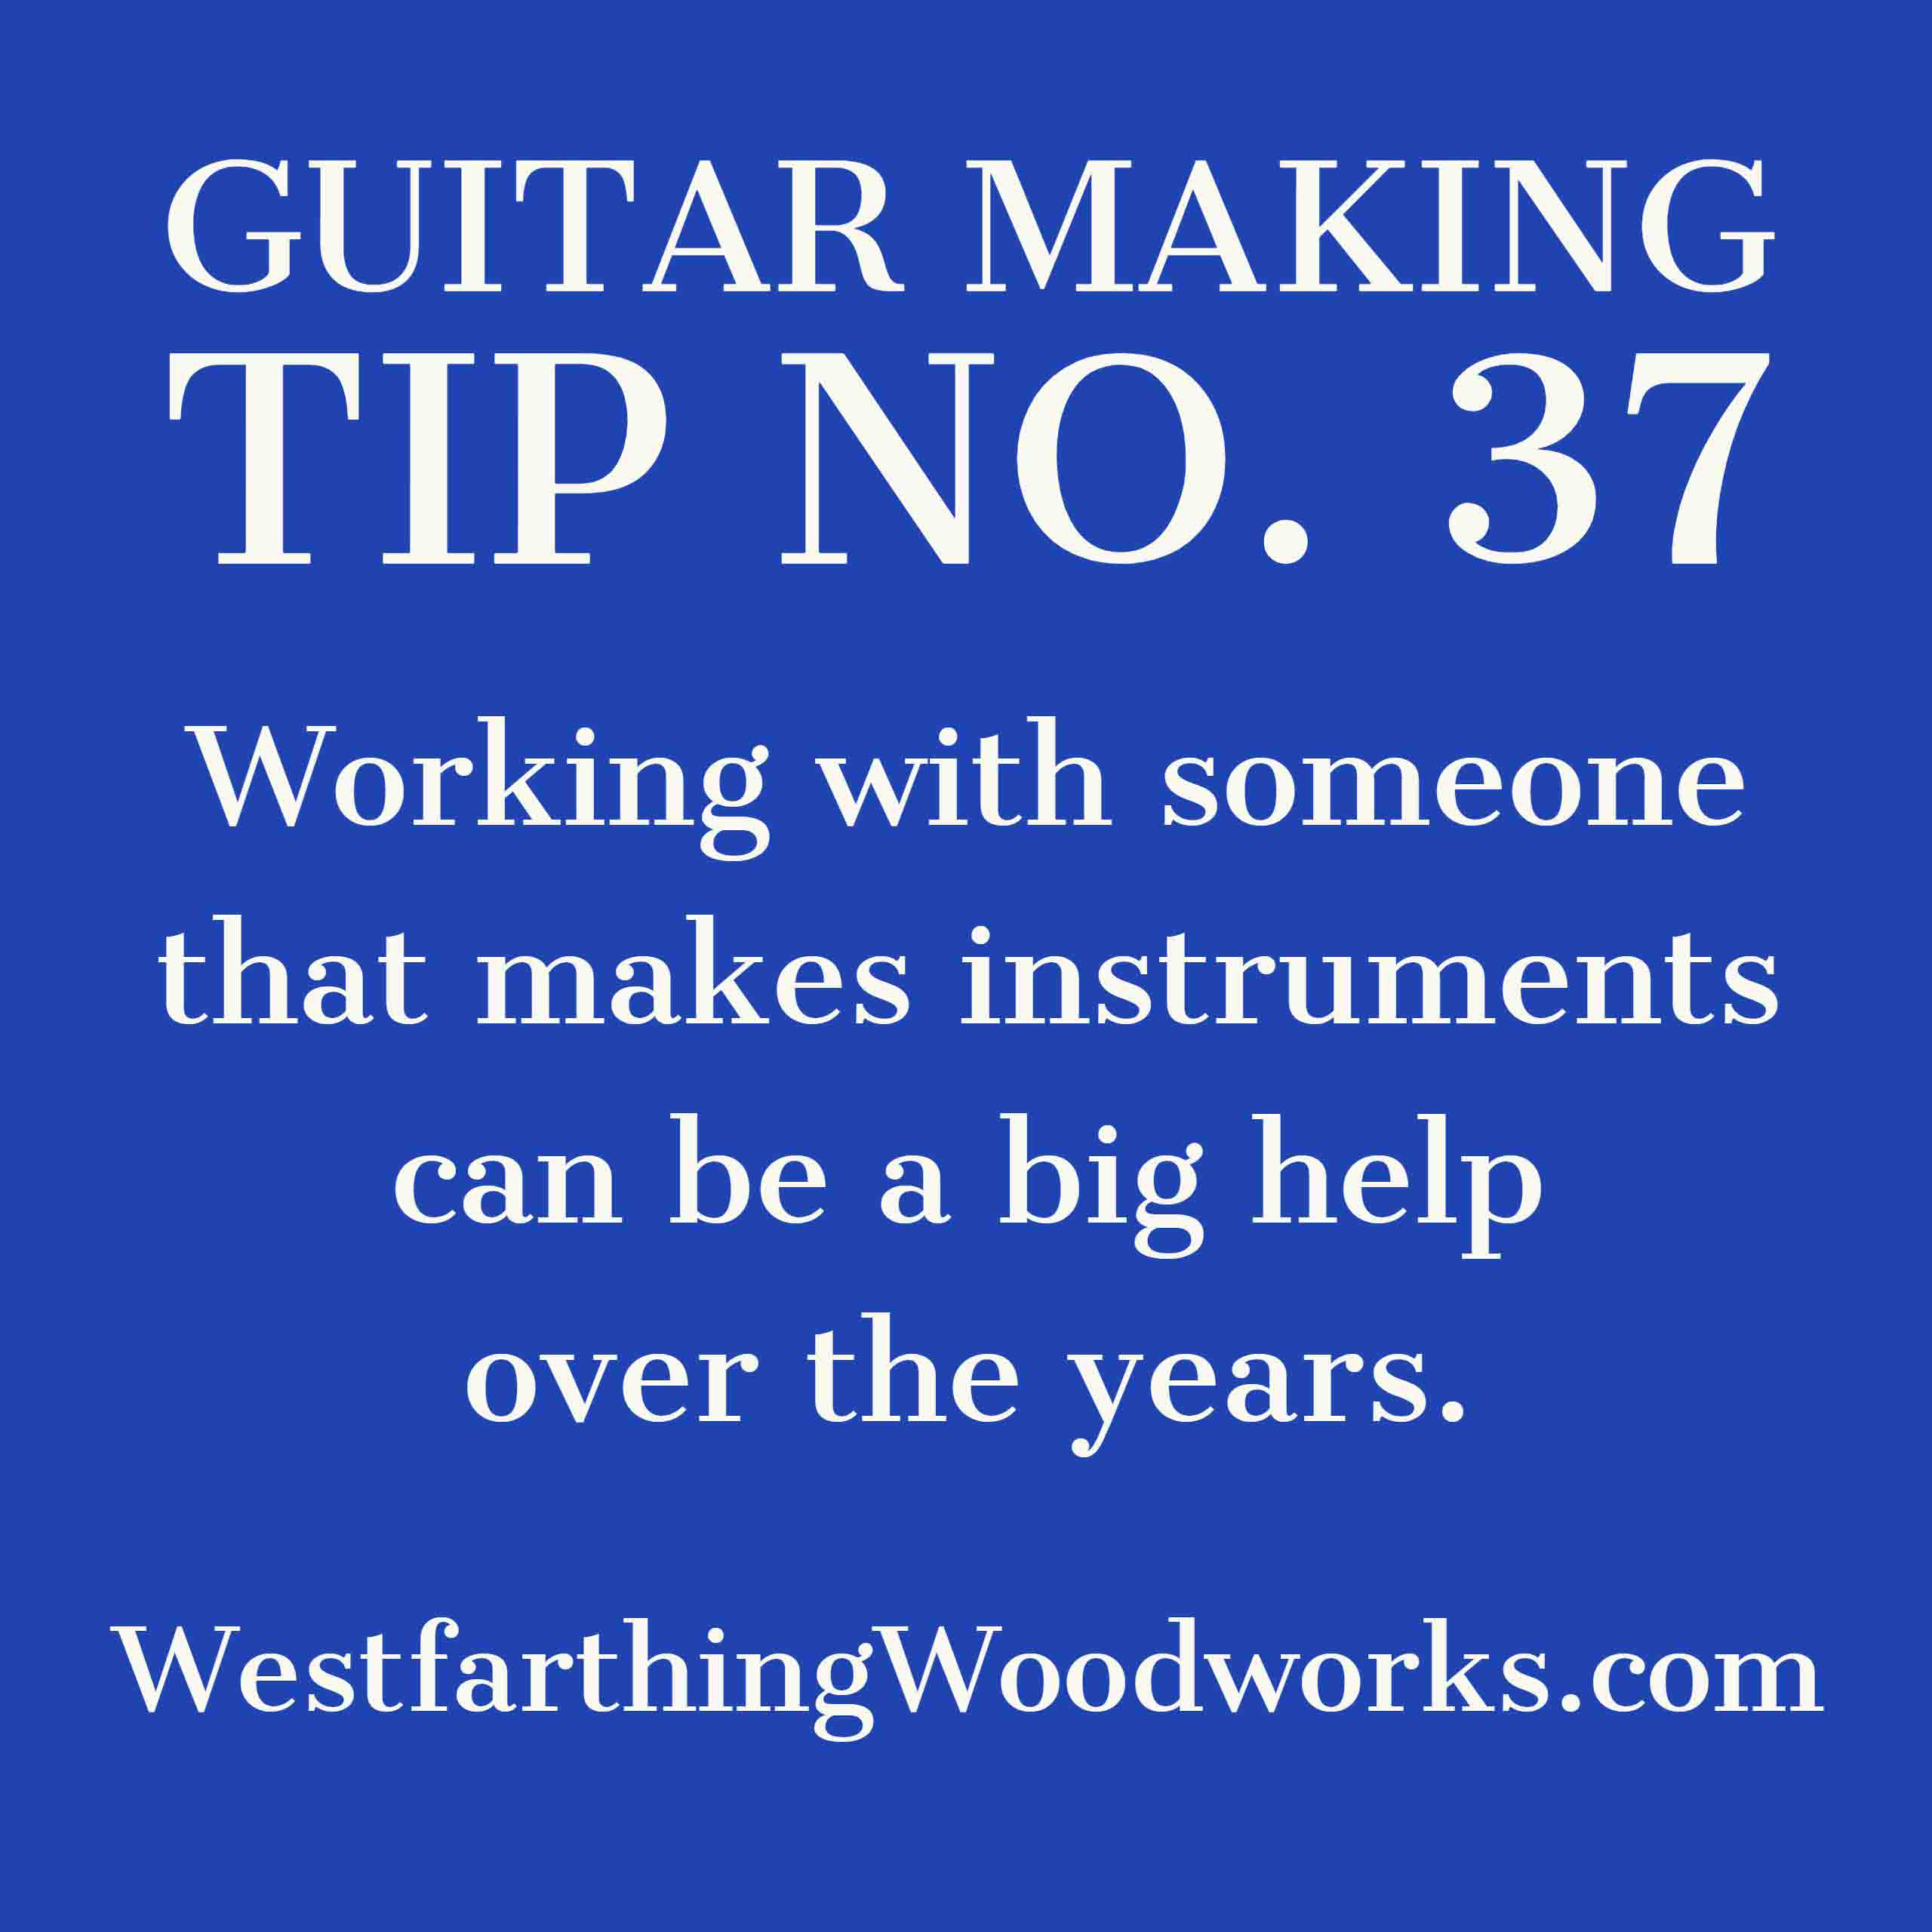 guitar making tip number 37 working with an instrument maker